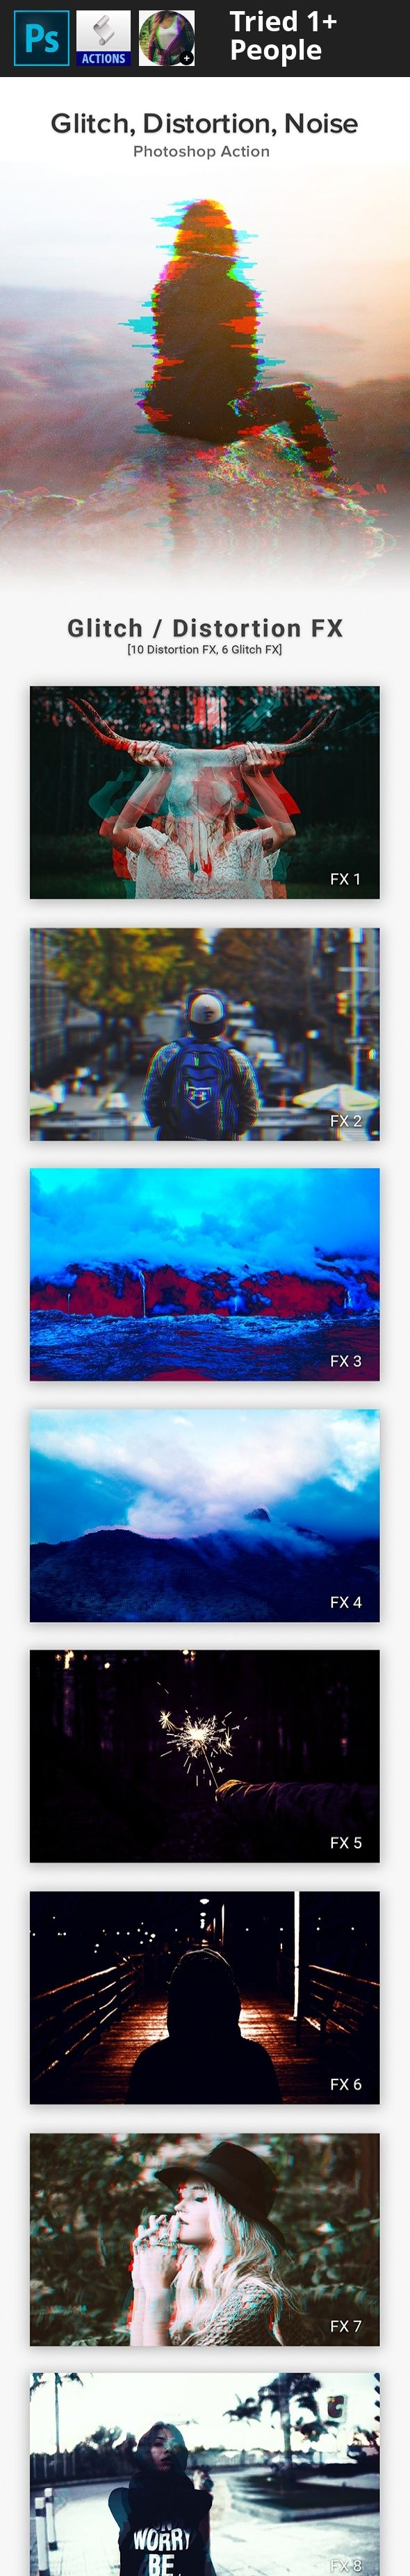 3d, art, broken, channel, color, digital, distortion, effect, experimental, frame, fx, gif, glitch, grain, movie, noise, pixel, rgb, ripple, slice, stereo image, stripes, tv, vhs Glitch, Distortion, Noise Effects You'll Get:    10 Actions  PDF GUIDE  Images are NOT included.Thank you for your time!